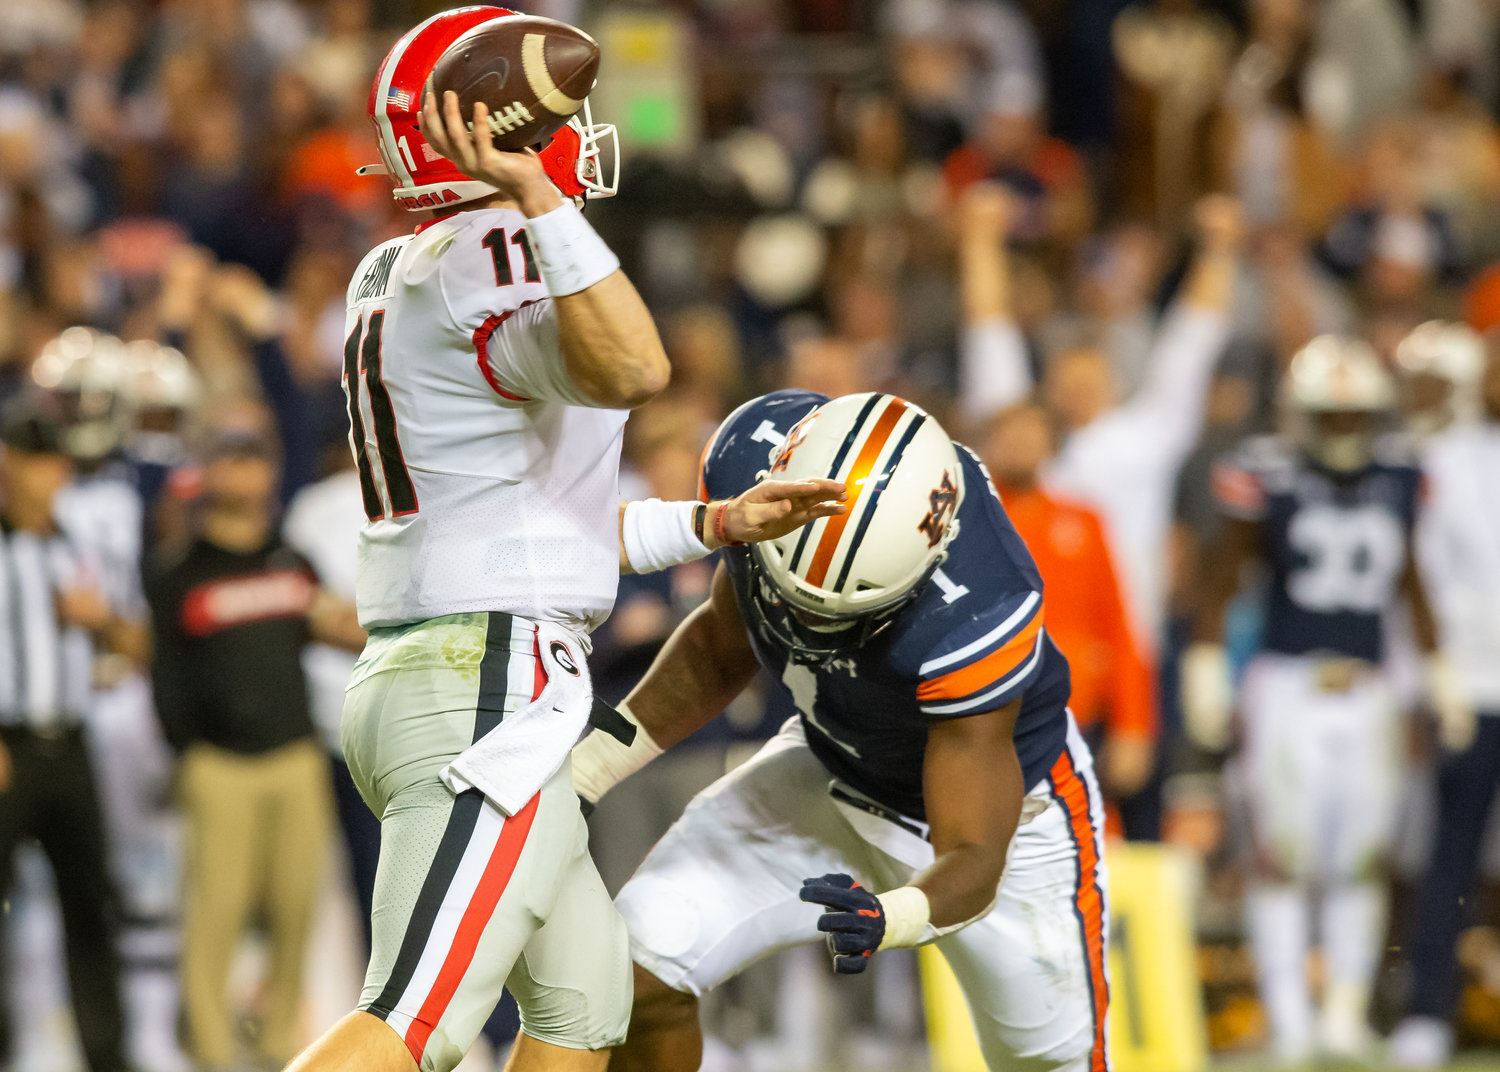 Georgia Bulldogs quarterback Jake Fromm (11) is pressured by Auburn Tigers defensive end Big Kat Bryant (1) during the second half of Saturday's game, at Jordan-Hare Stadium in Auburn,, AL. Daily Mountain Eagle -  Jeff Johnsey